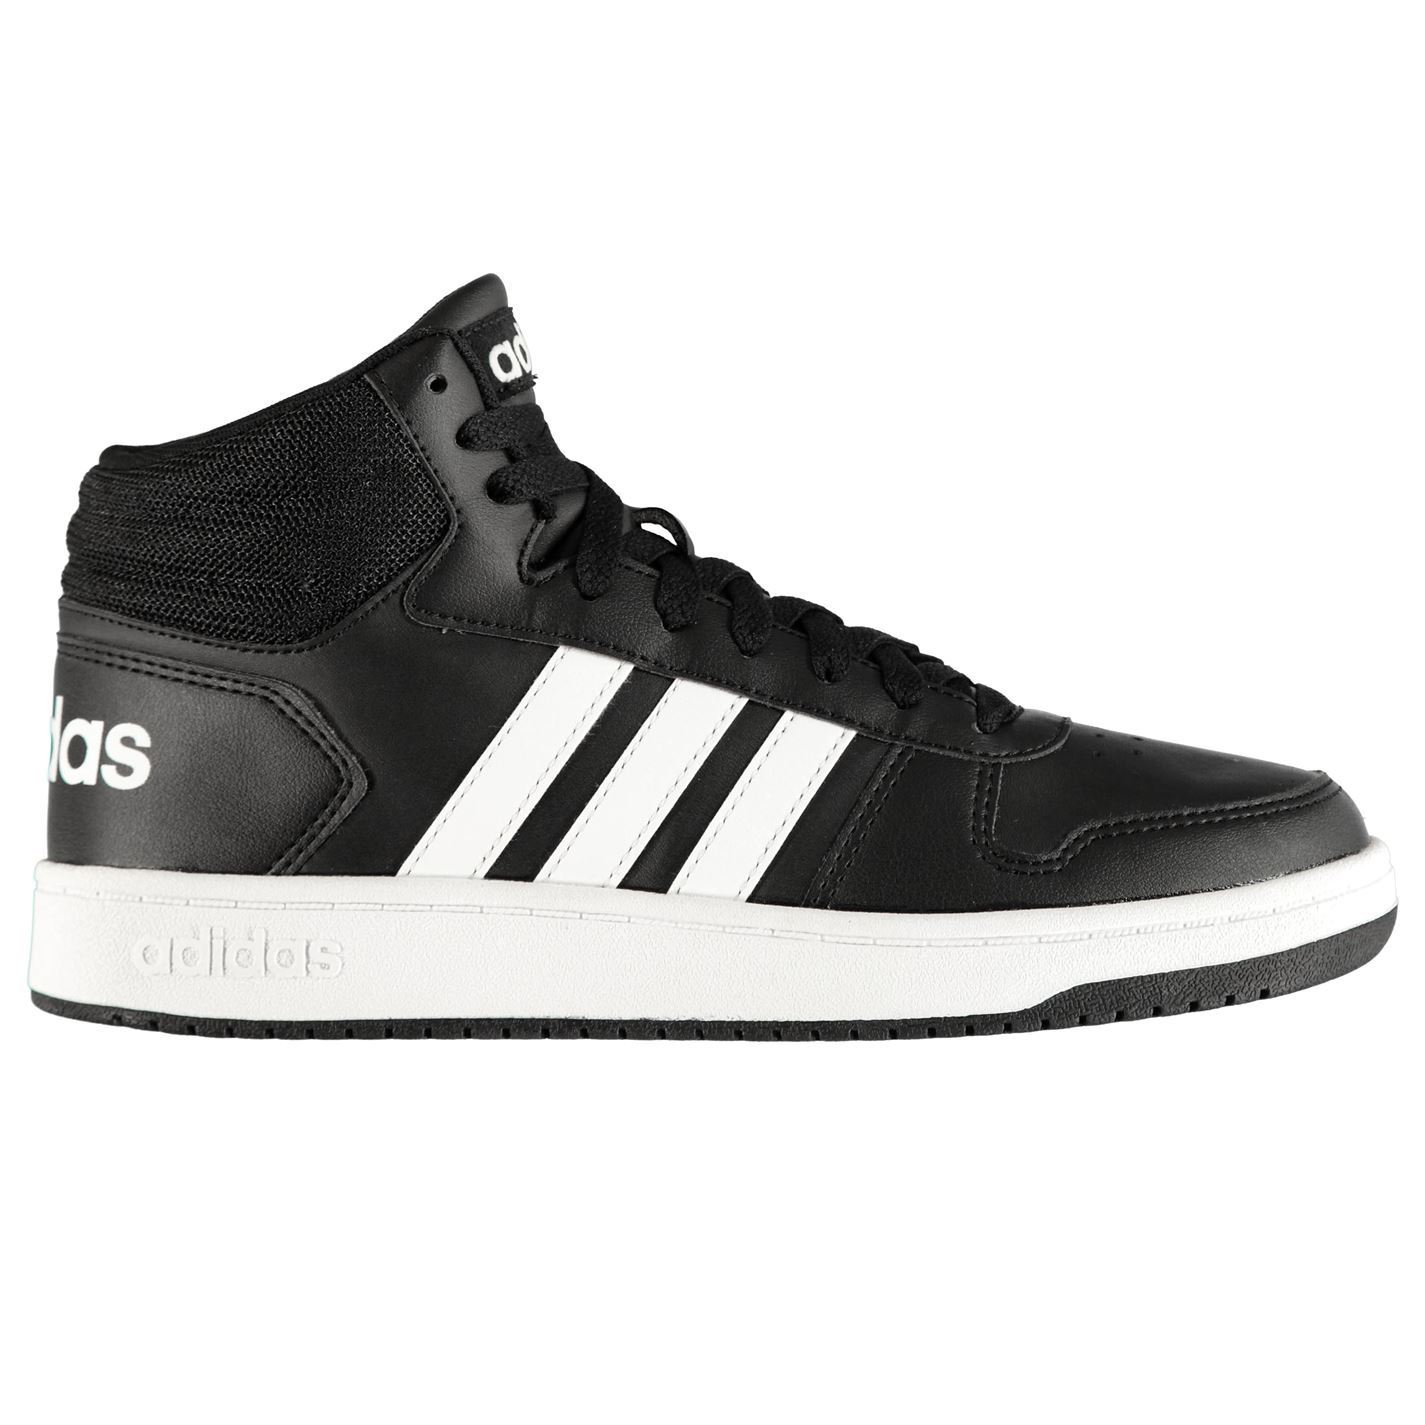 Adidas-Hoops-Mi-Montantes-Homme-athleisure-Chaussures-Baskets-Chaussures miniature 4